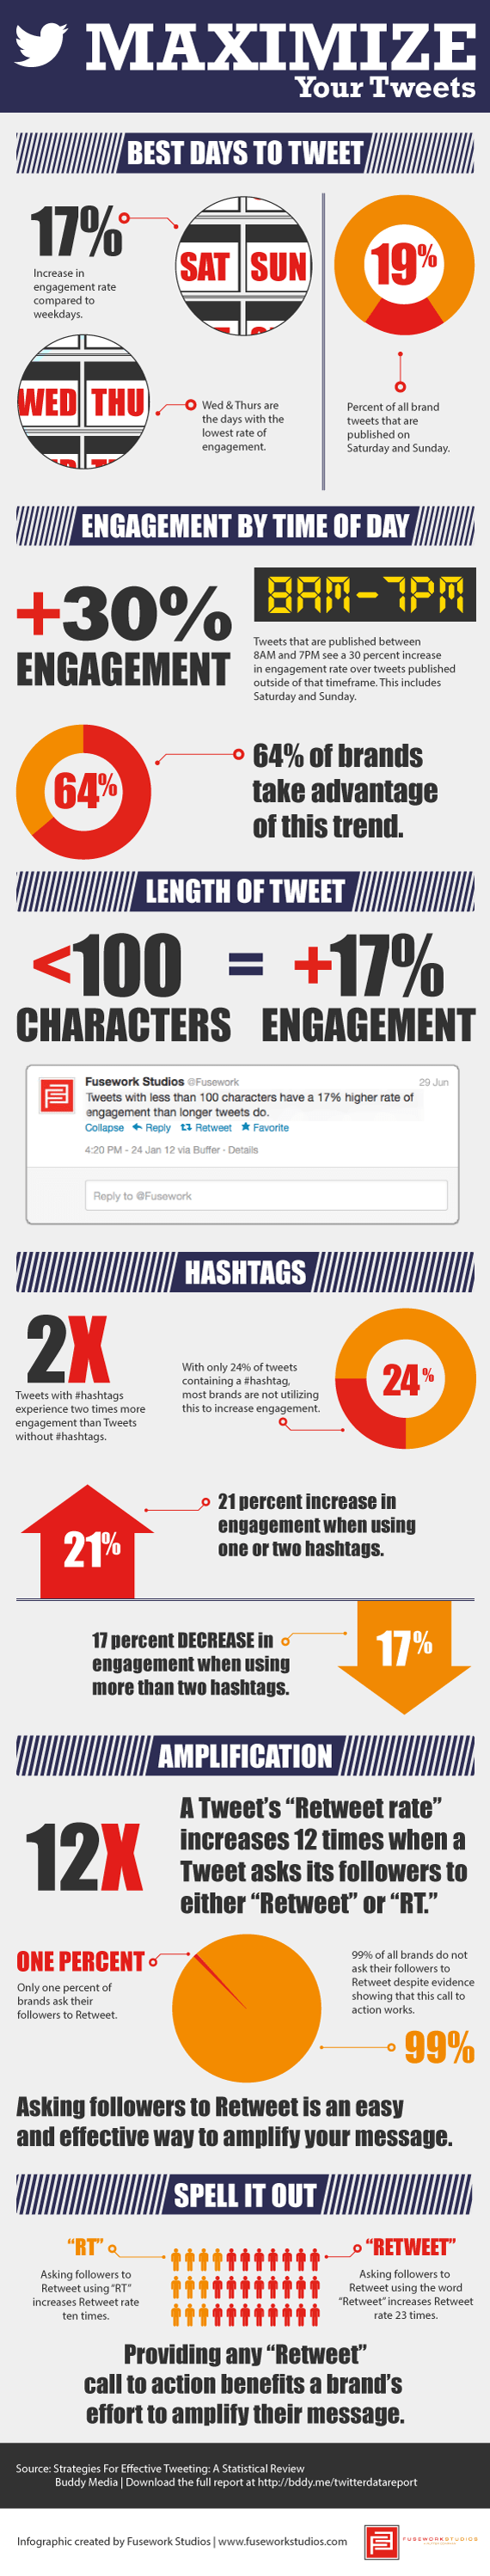 Maximizing Your Tweets: Twitter Infographic